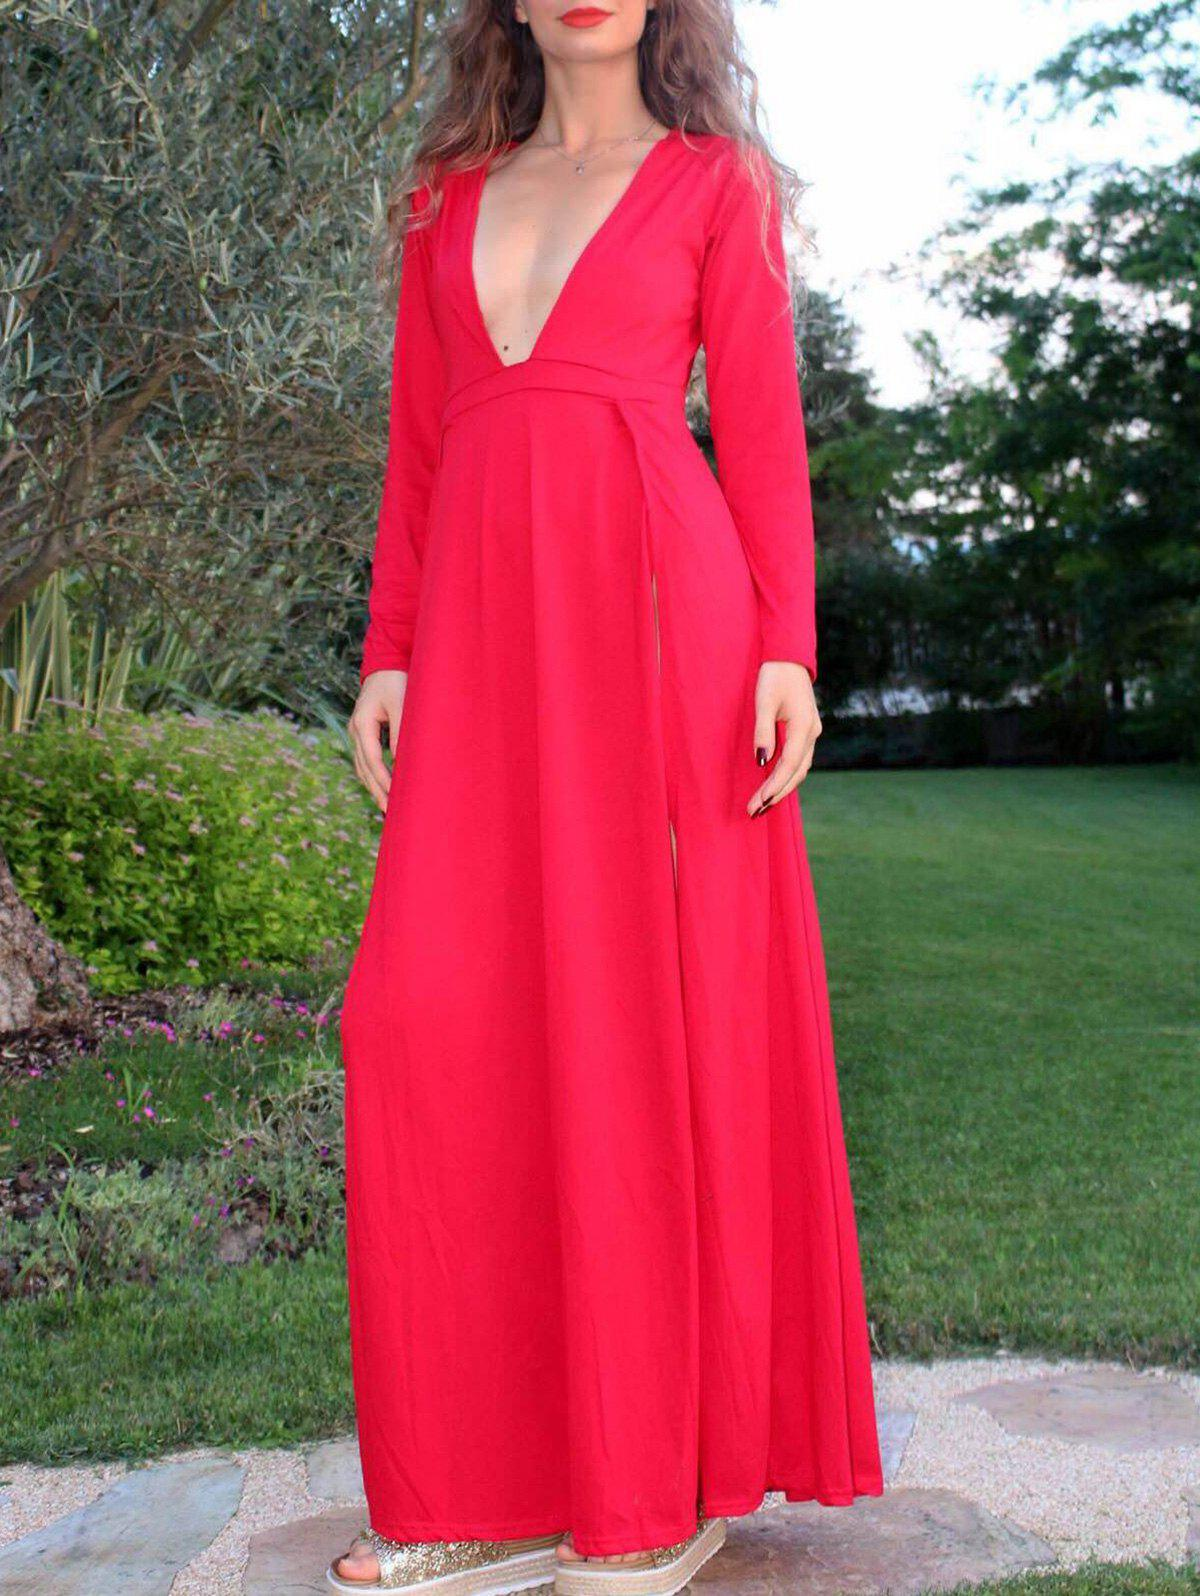 Plunging Neck High Furcal Long Sleeve Dress For Women - RED M